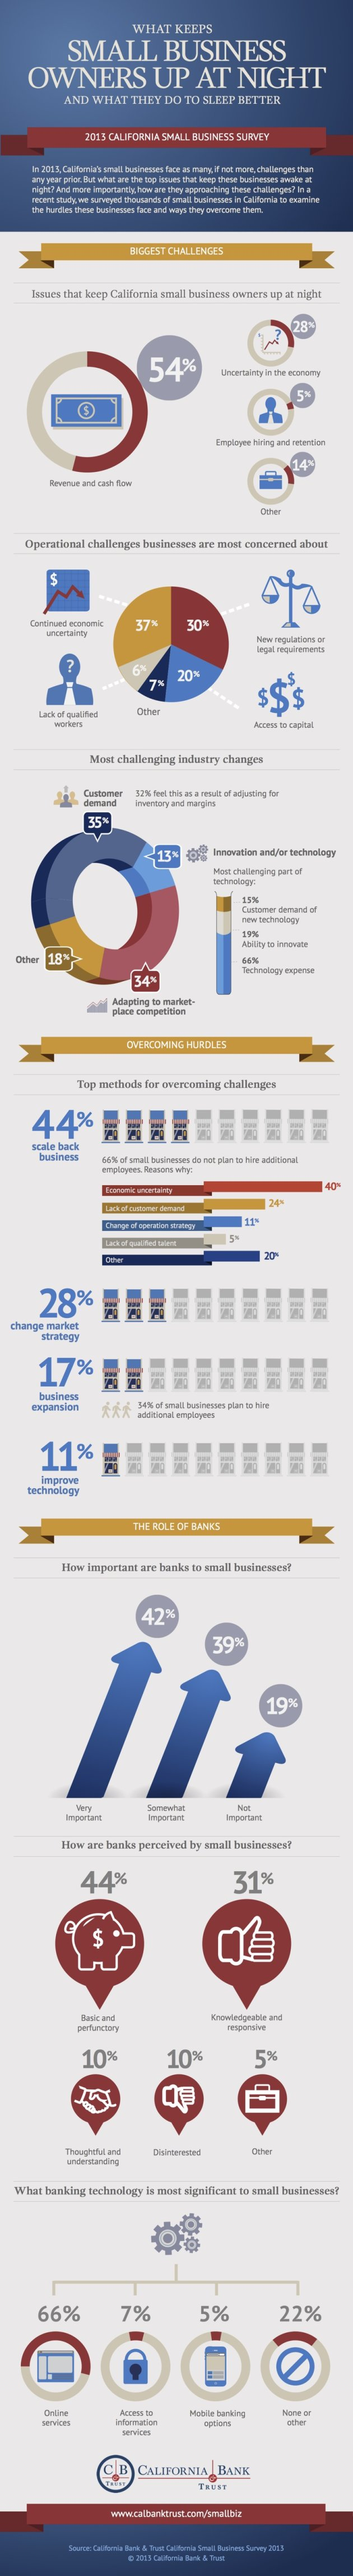 Survey of Small Business Owners Shows Economy a Major Concern (Infographic) image California Bank Trust Small Business Survey2